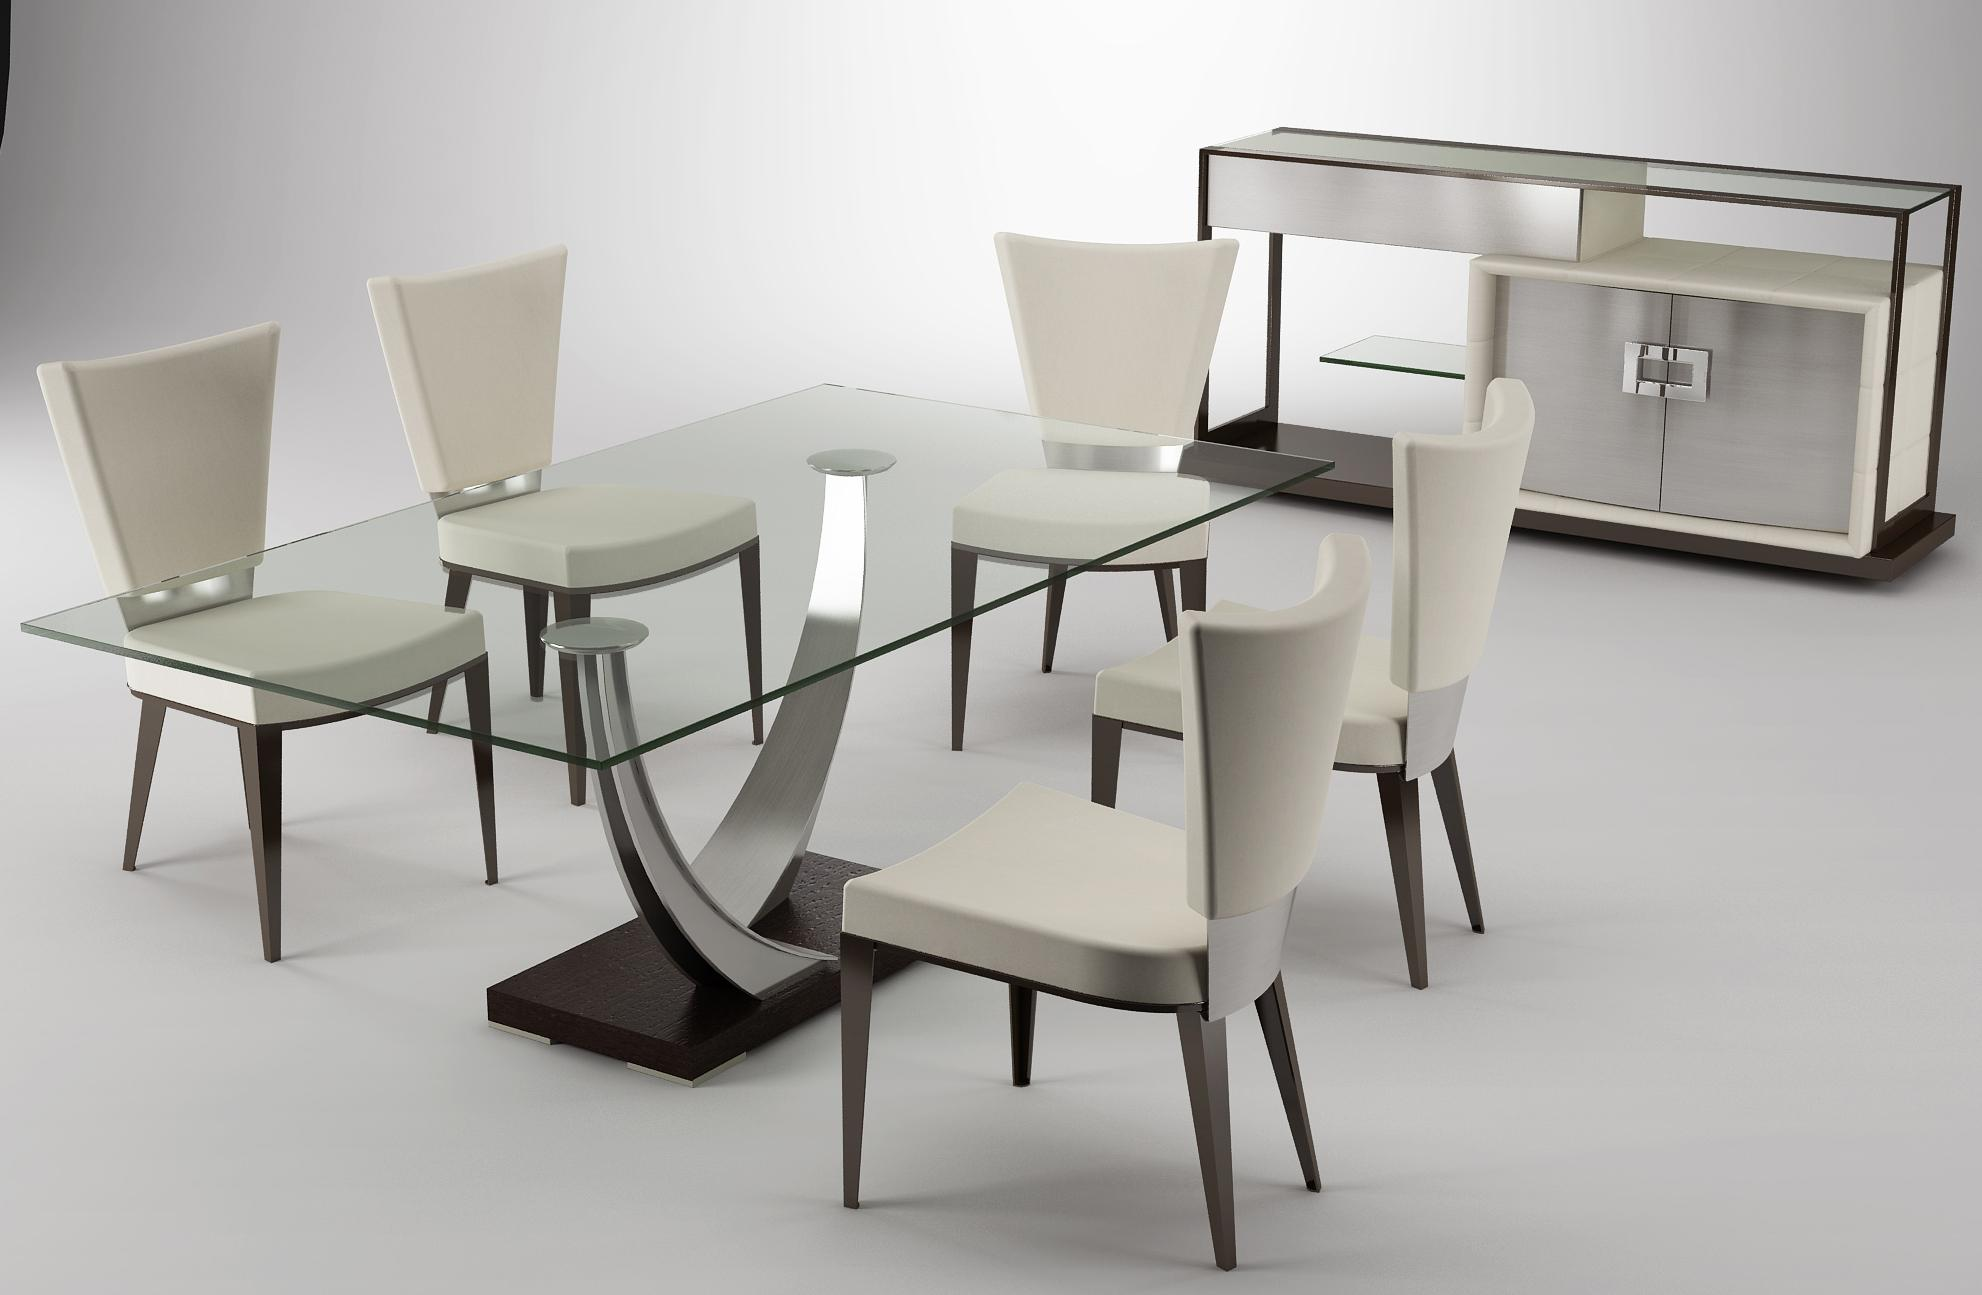 19 magnificent modern dining tables you need to see right now for Dining room designs modern